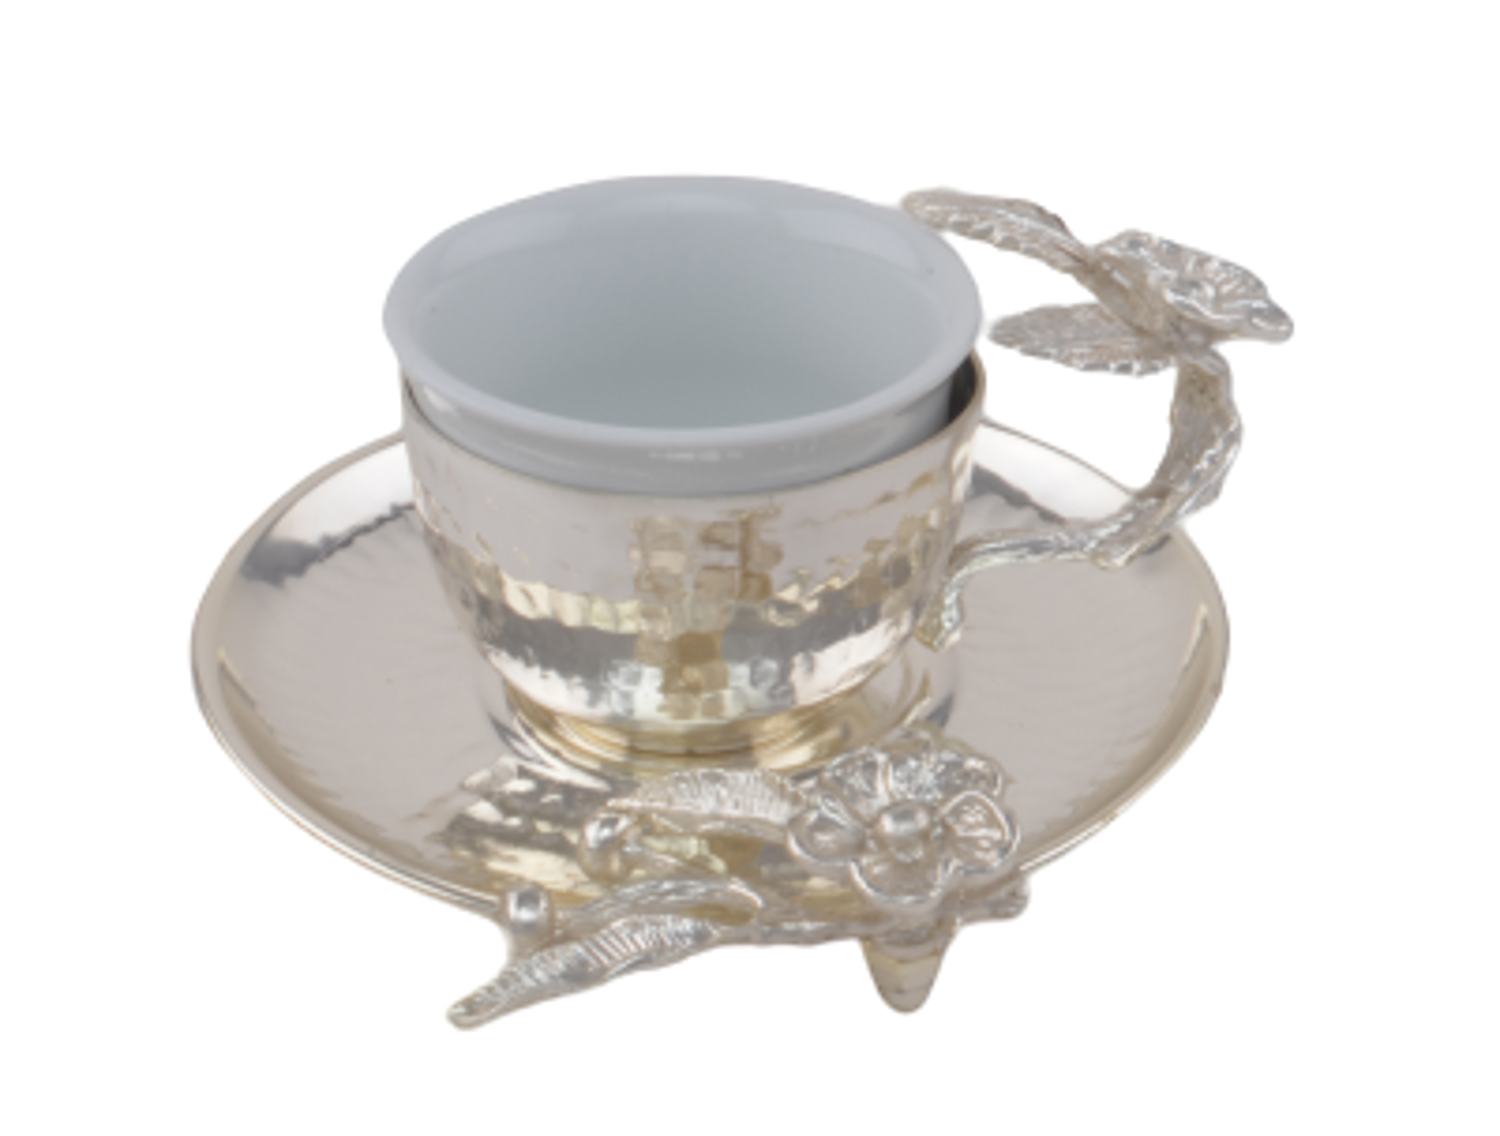 Picture of MEVLANA ARABIAN COFFEE CUP SILVER J.G